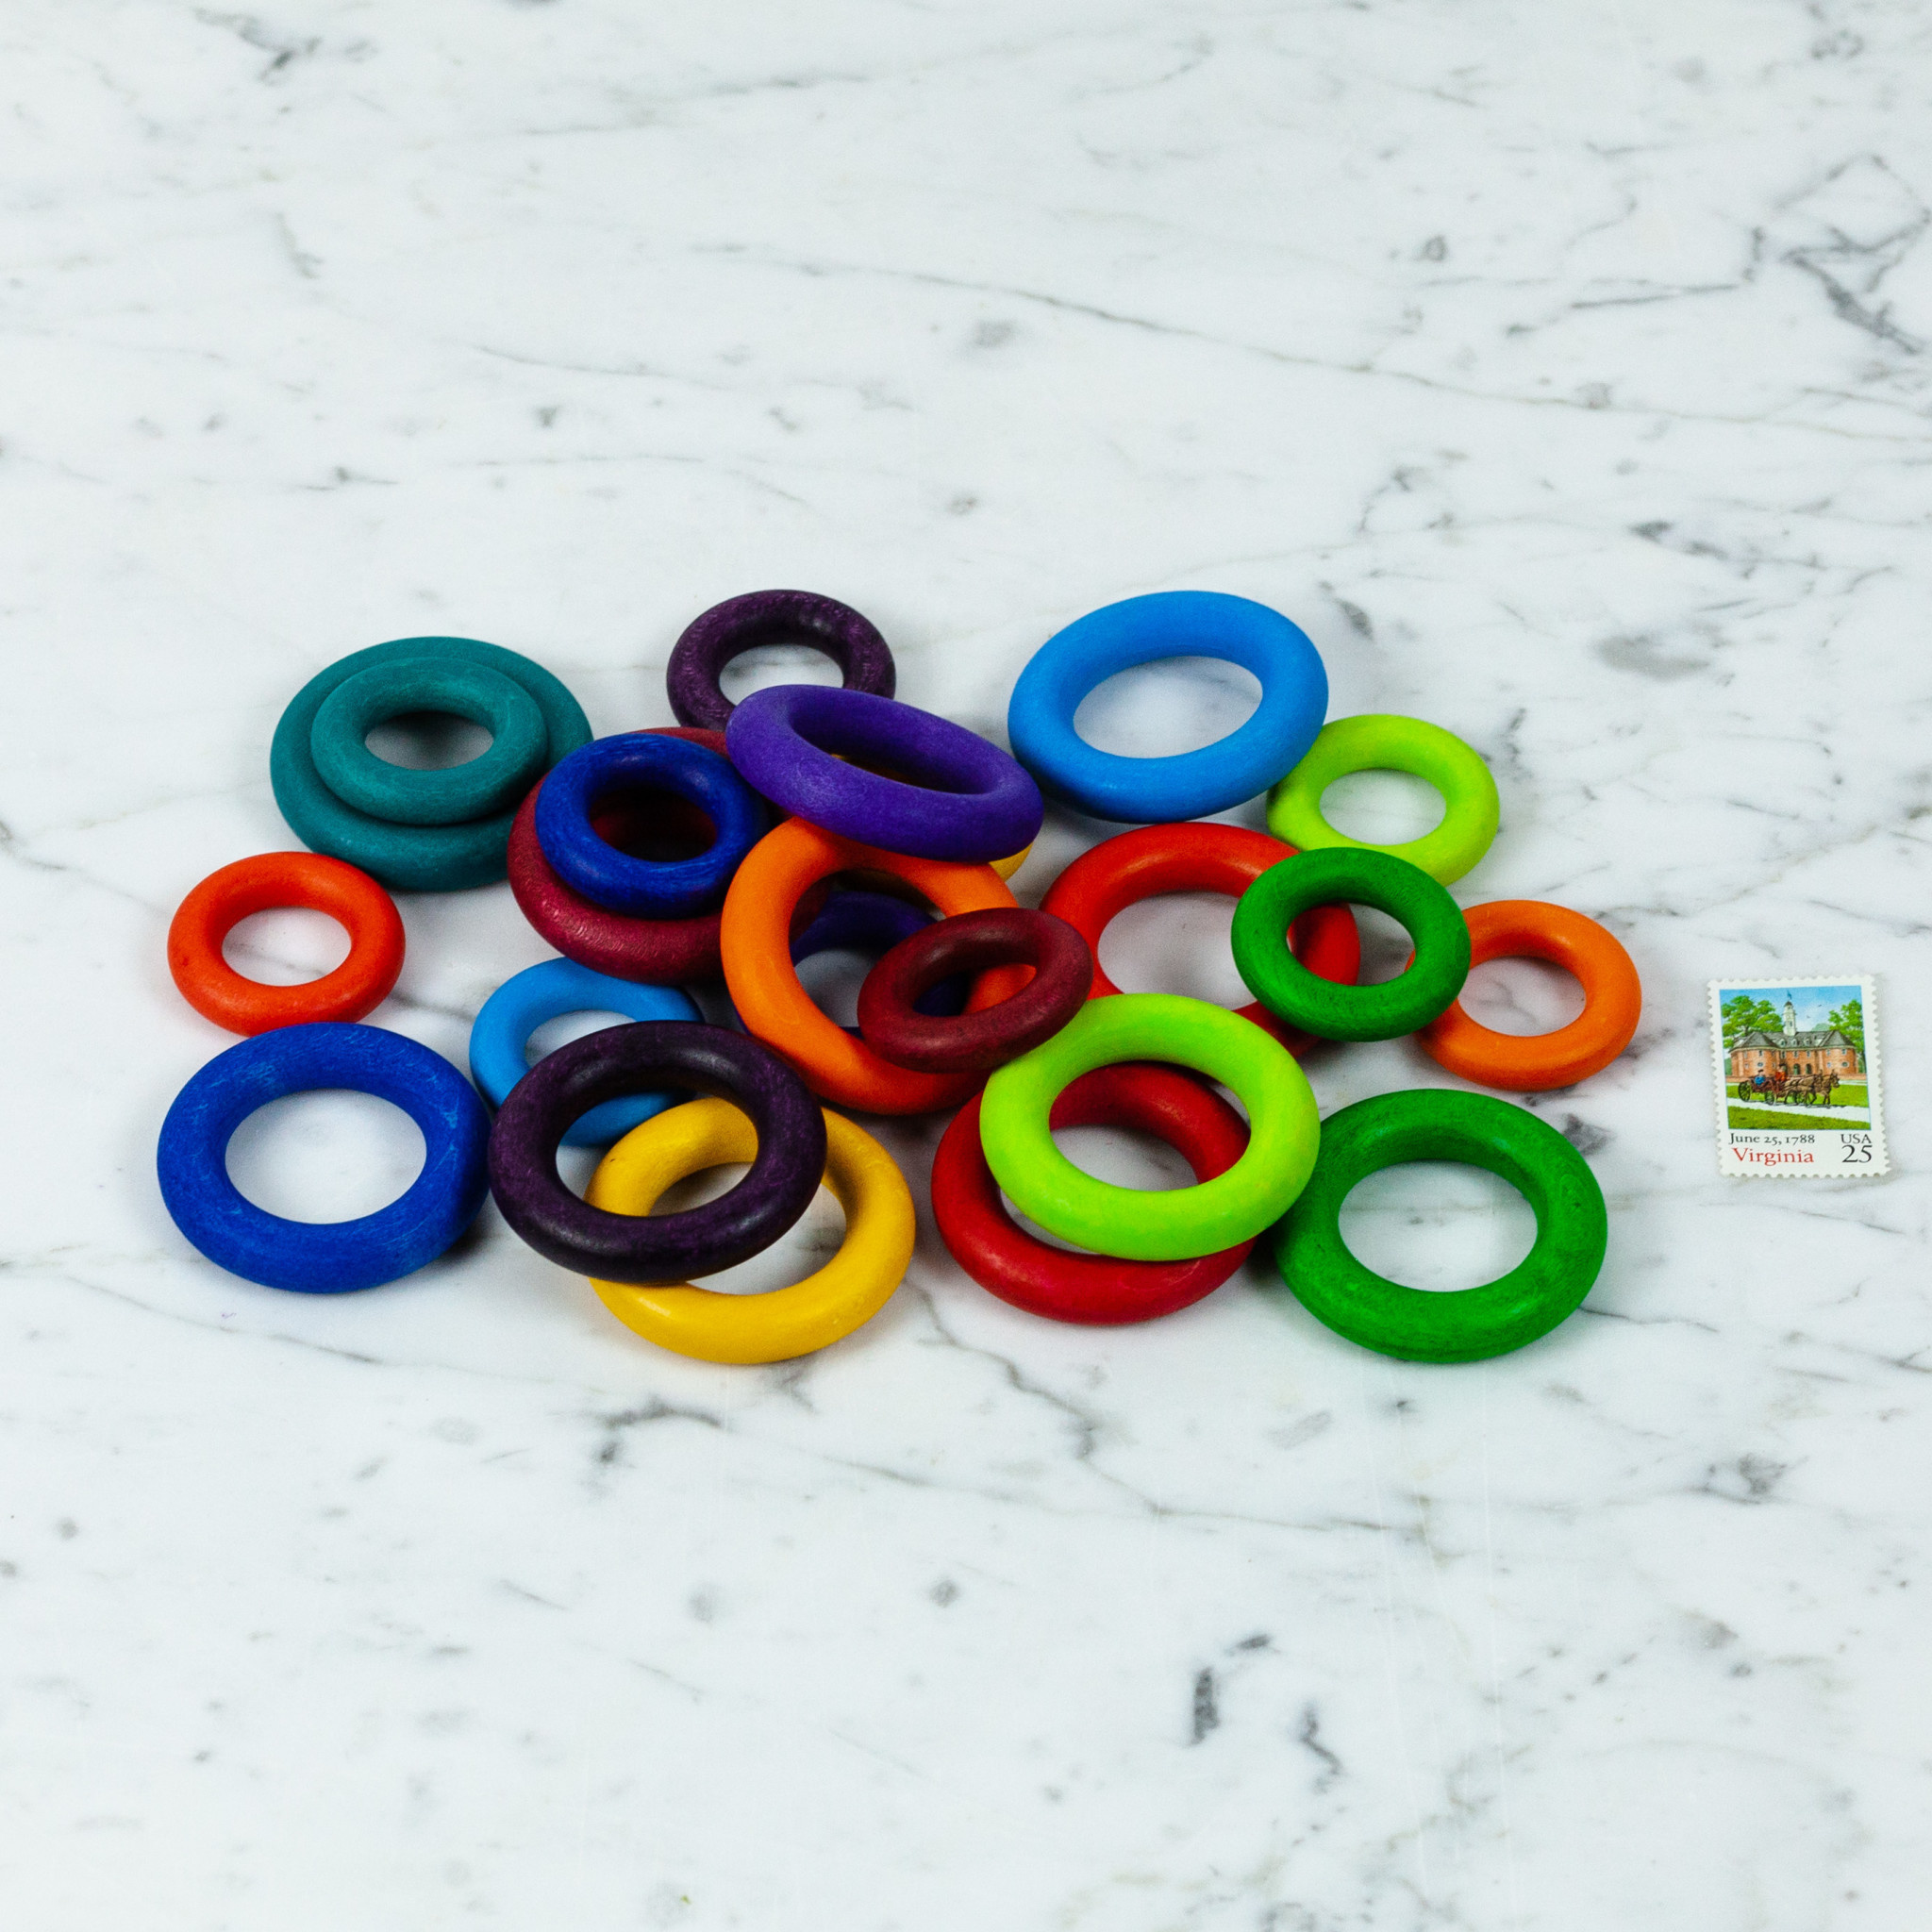 Grimm's Toys Wooden Rainbow Building Ring Set